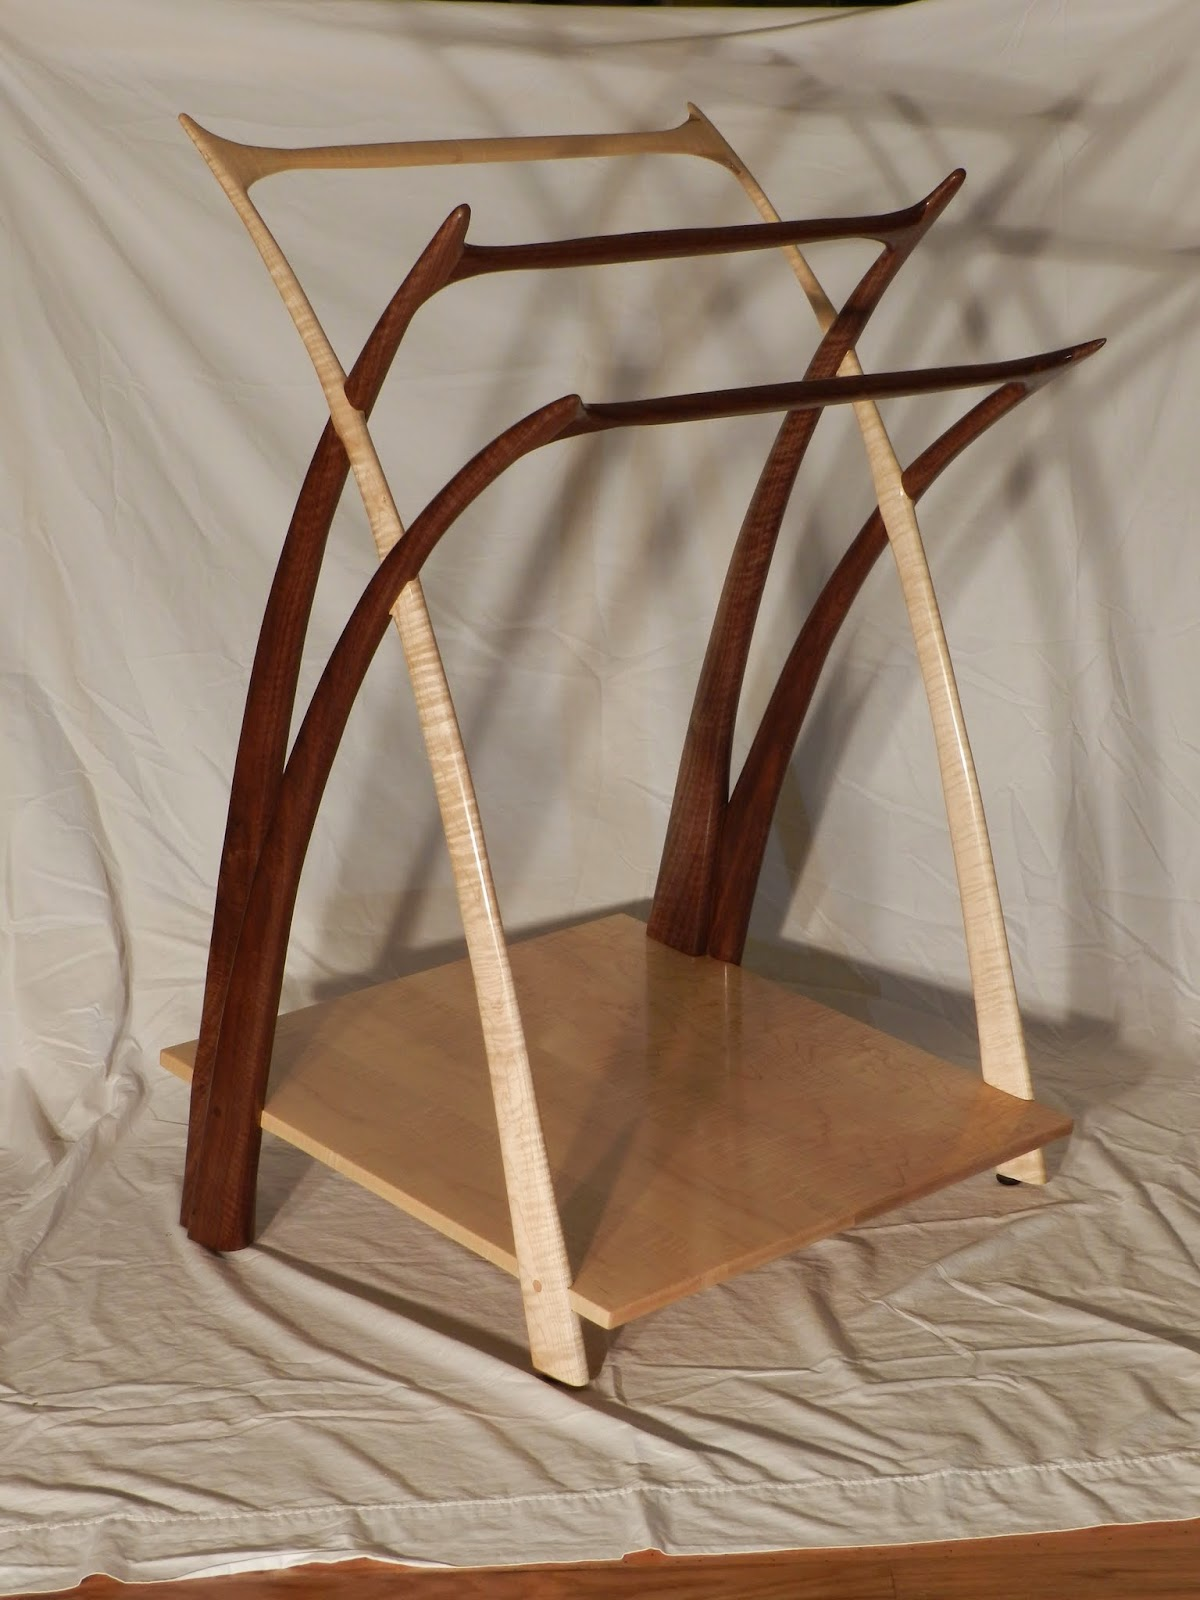 The Penultimate Woodshop: Lill's Quilt Rack: Part XII ...